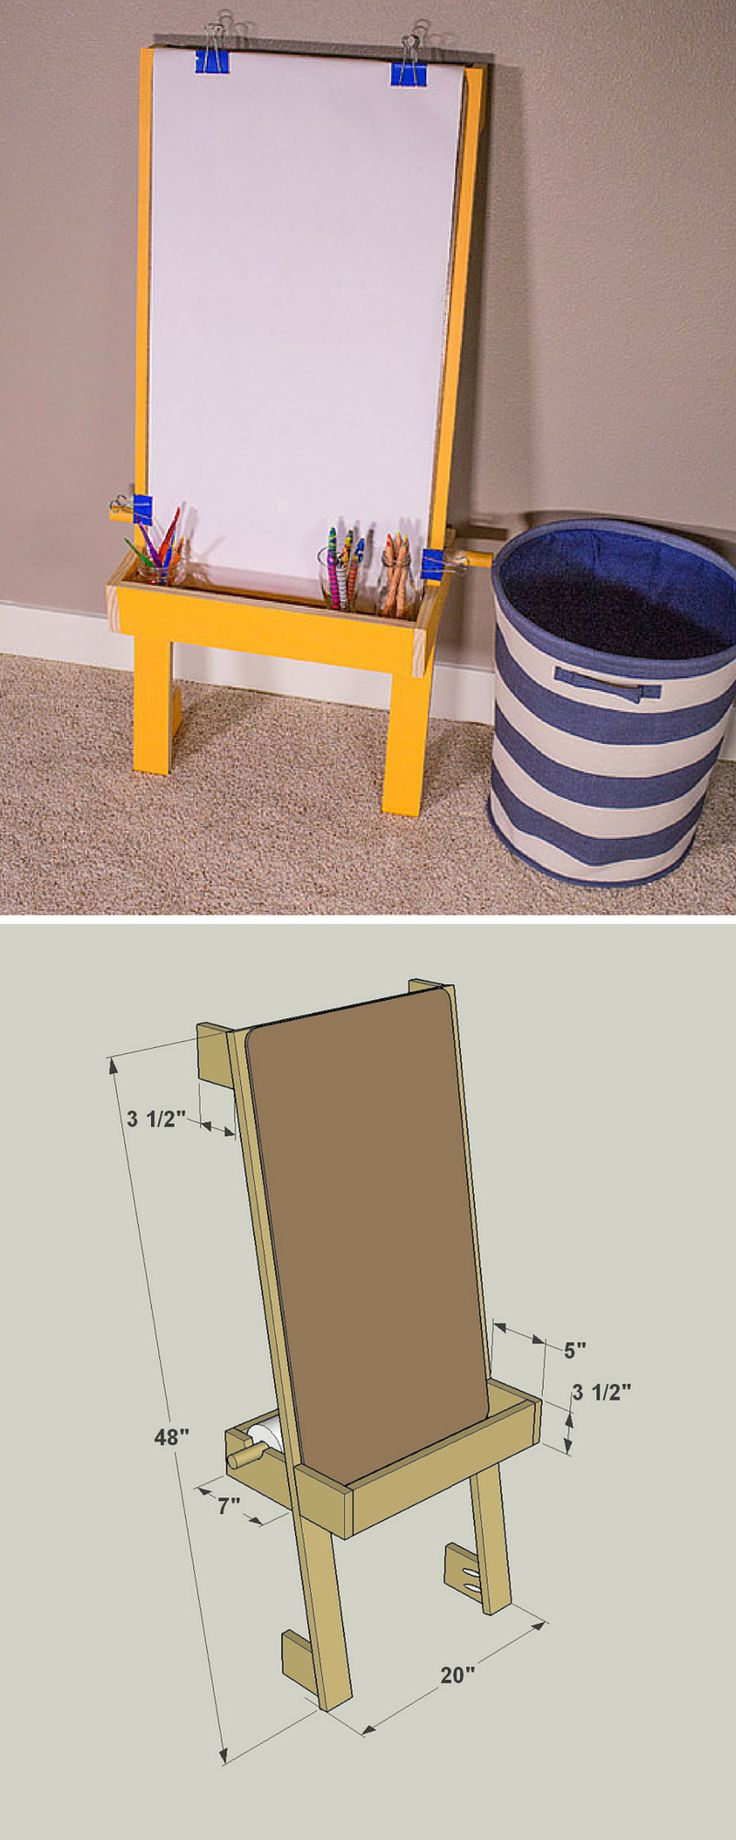 25 Best Ideas About Art Easel On Pinterest Painting